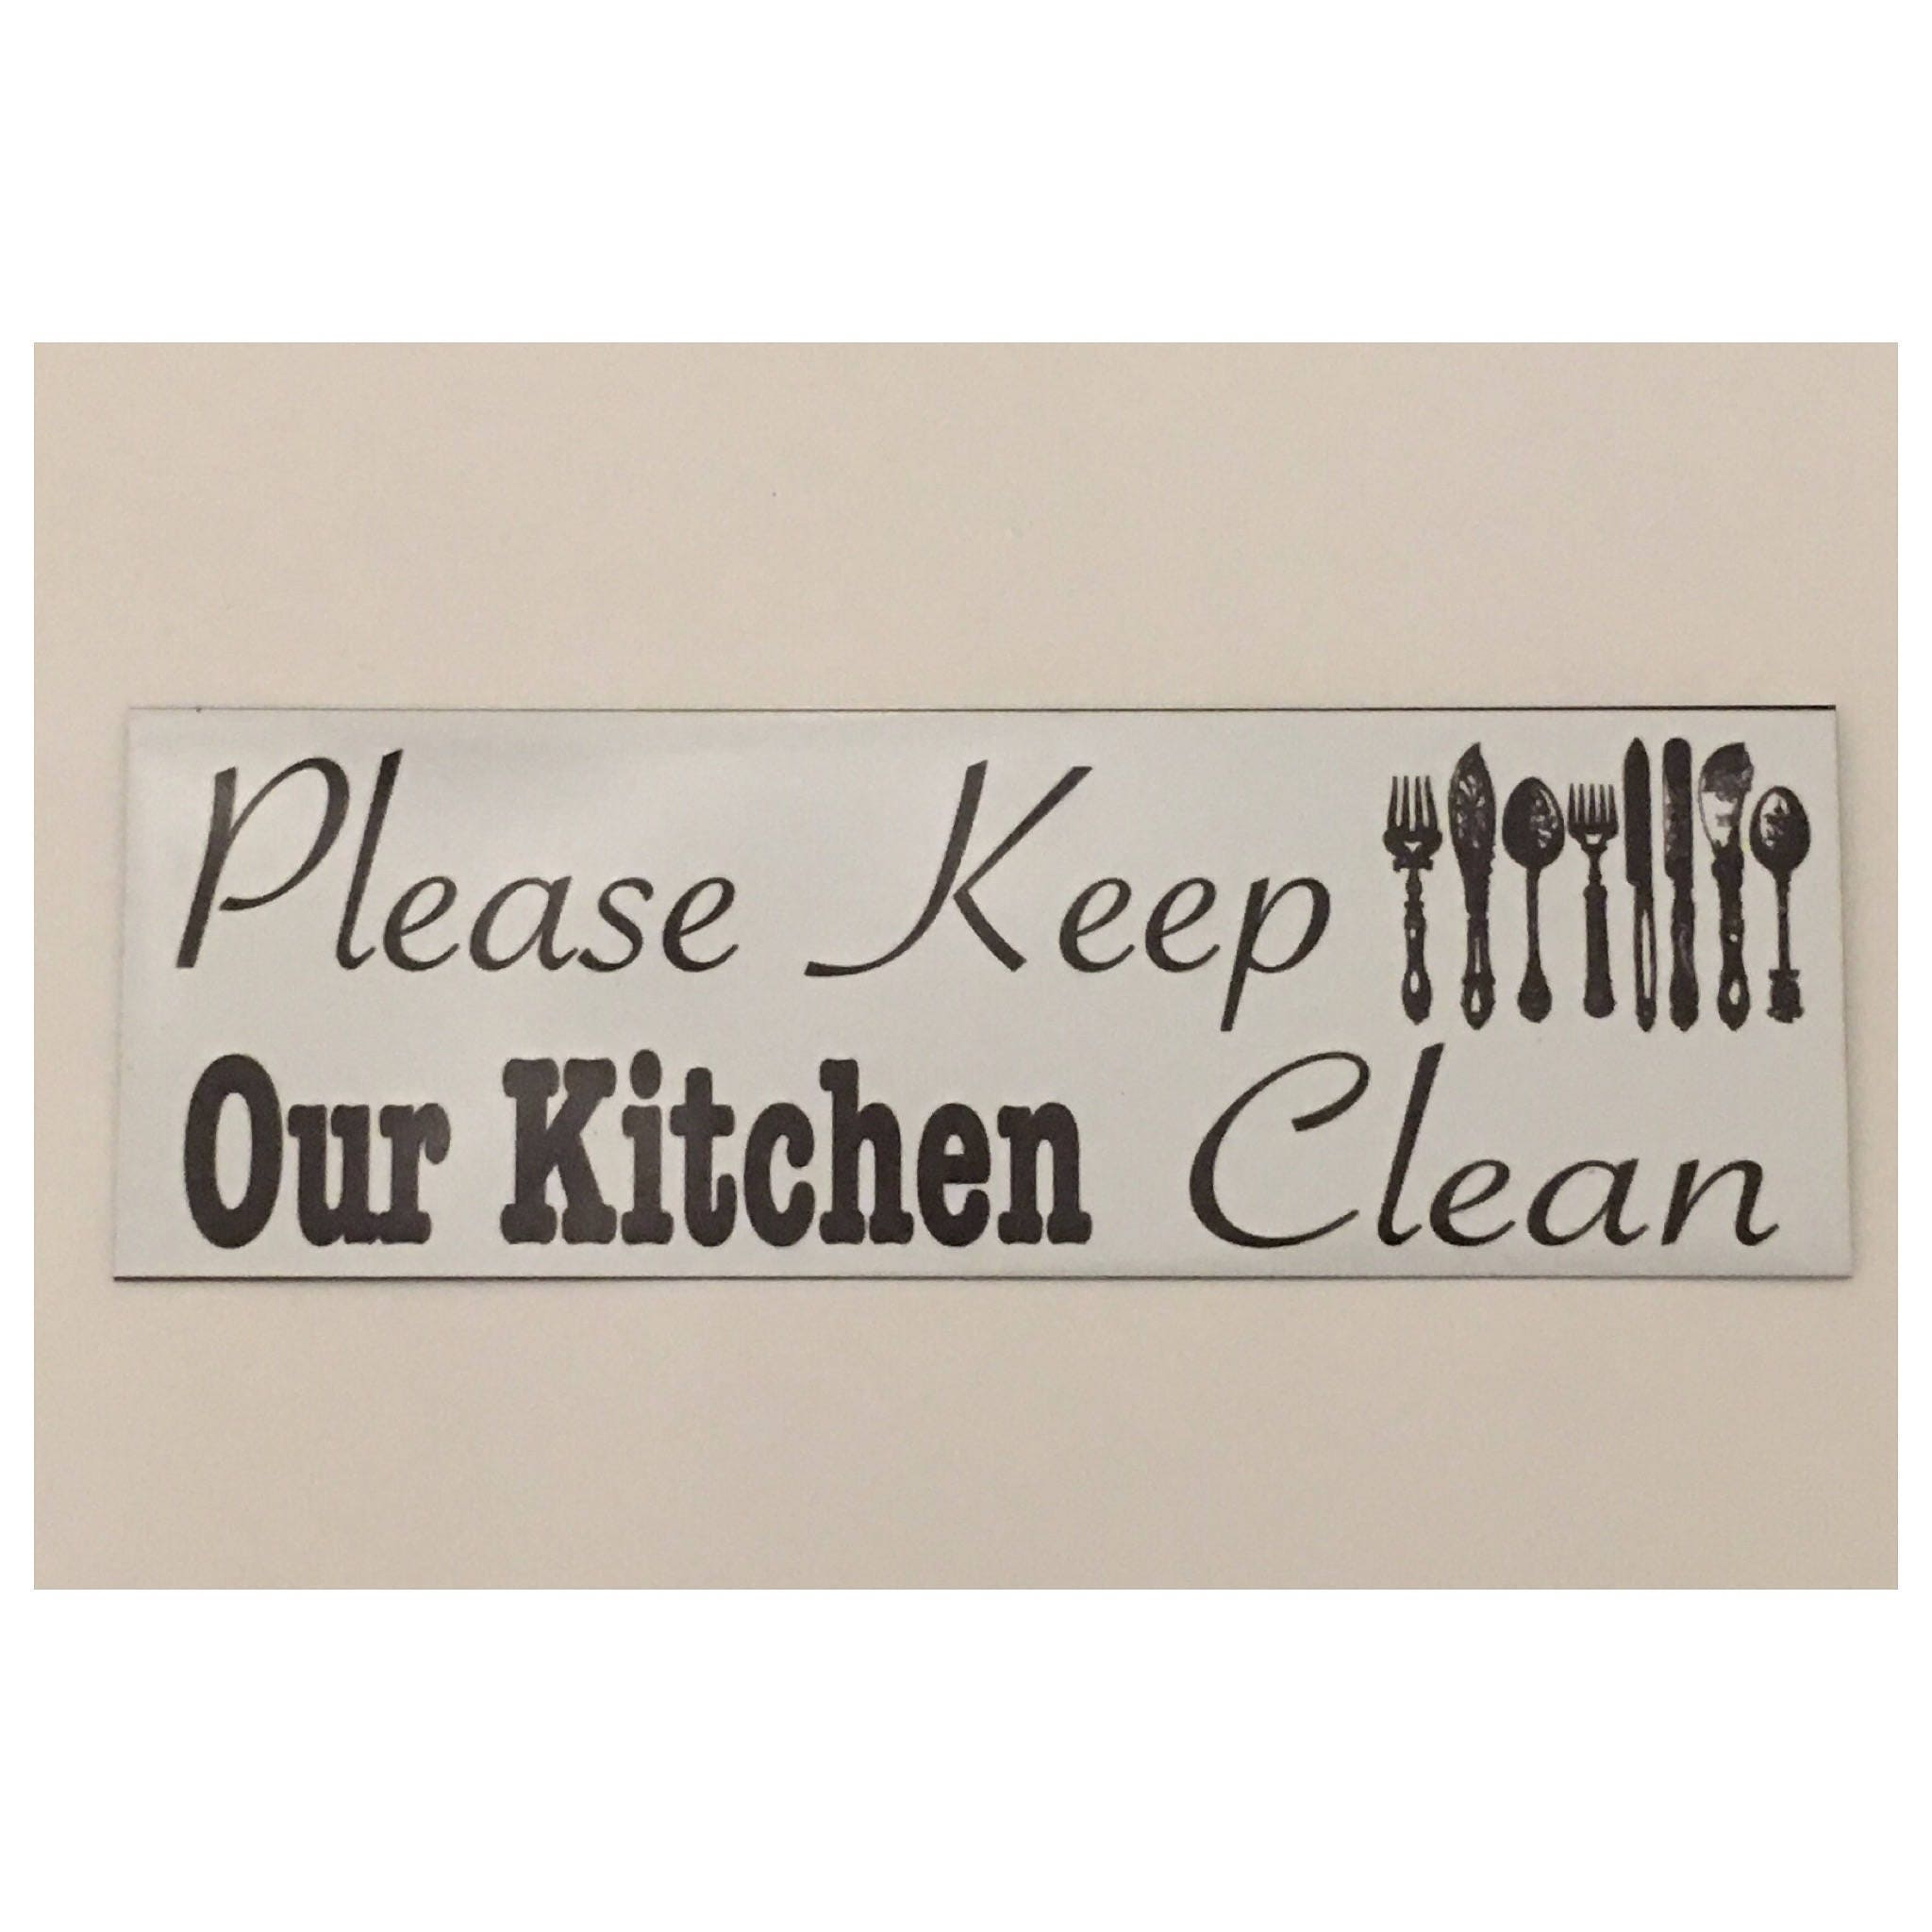 Signs For Workplace Kitchen: Please Keep Our Kitchen Clean Room Sign Cafe House Kitchen